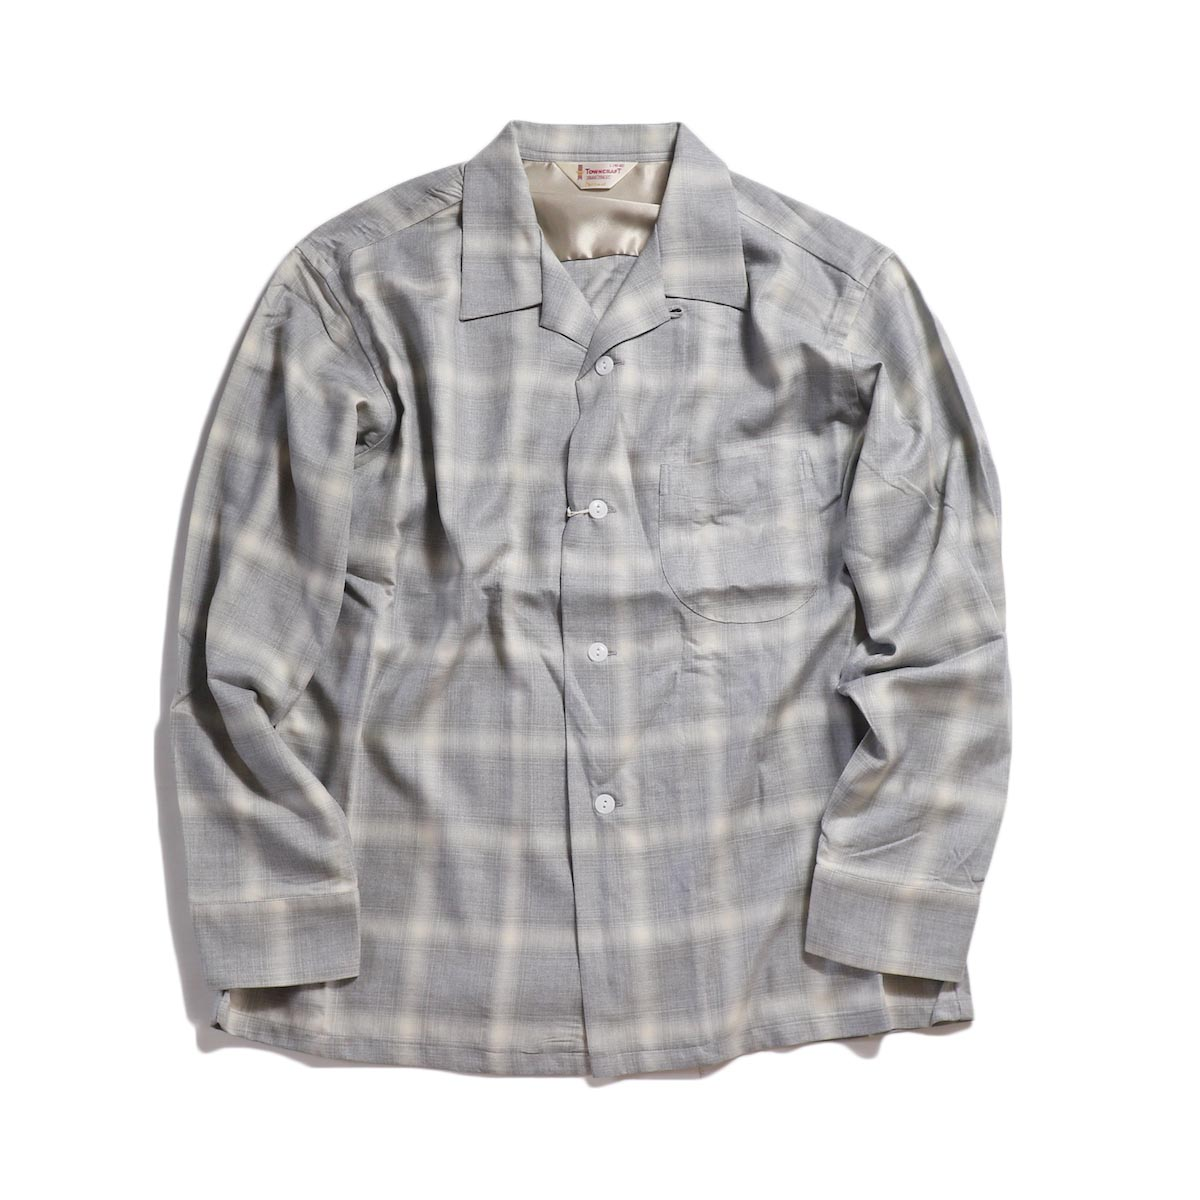 TOWN CRAFT / OMBLE OPEN SHIRTS -Gray